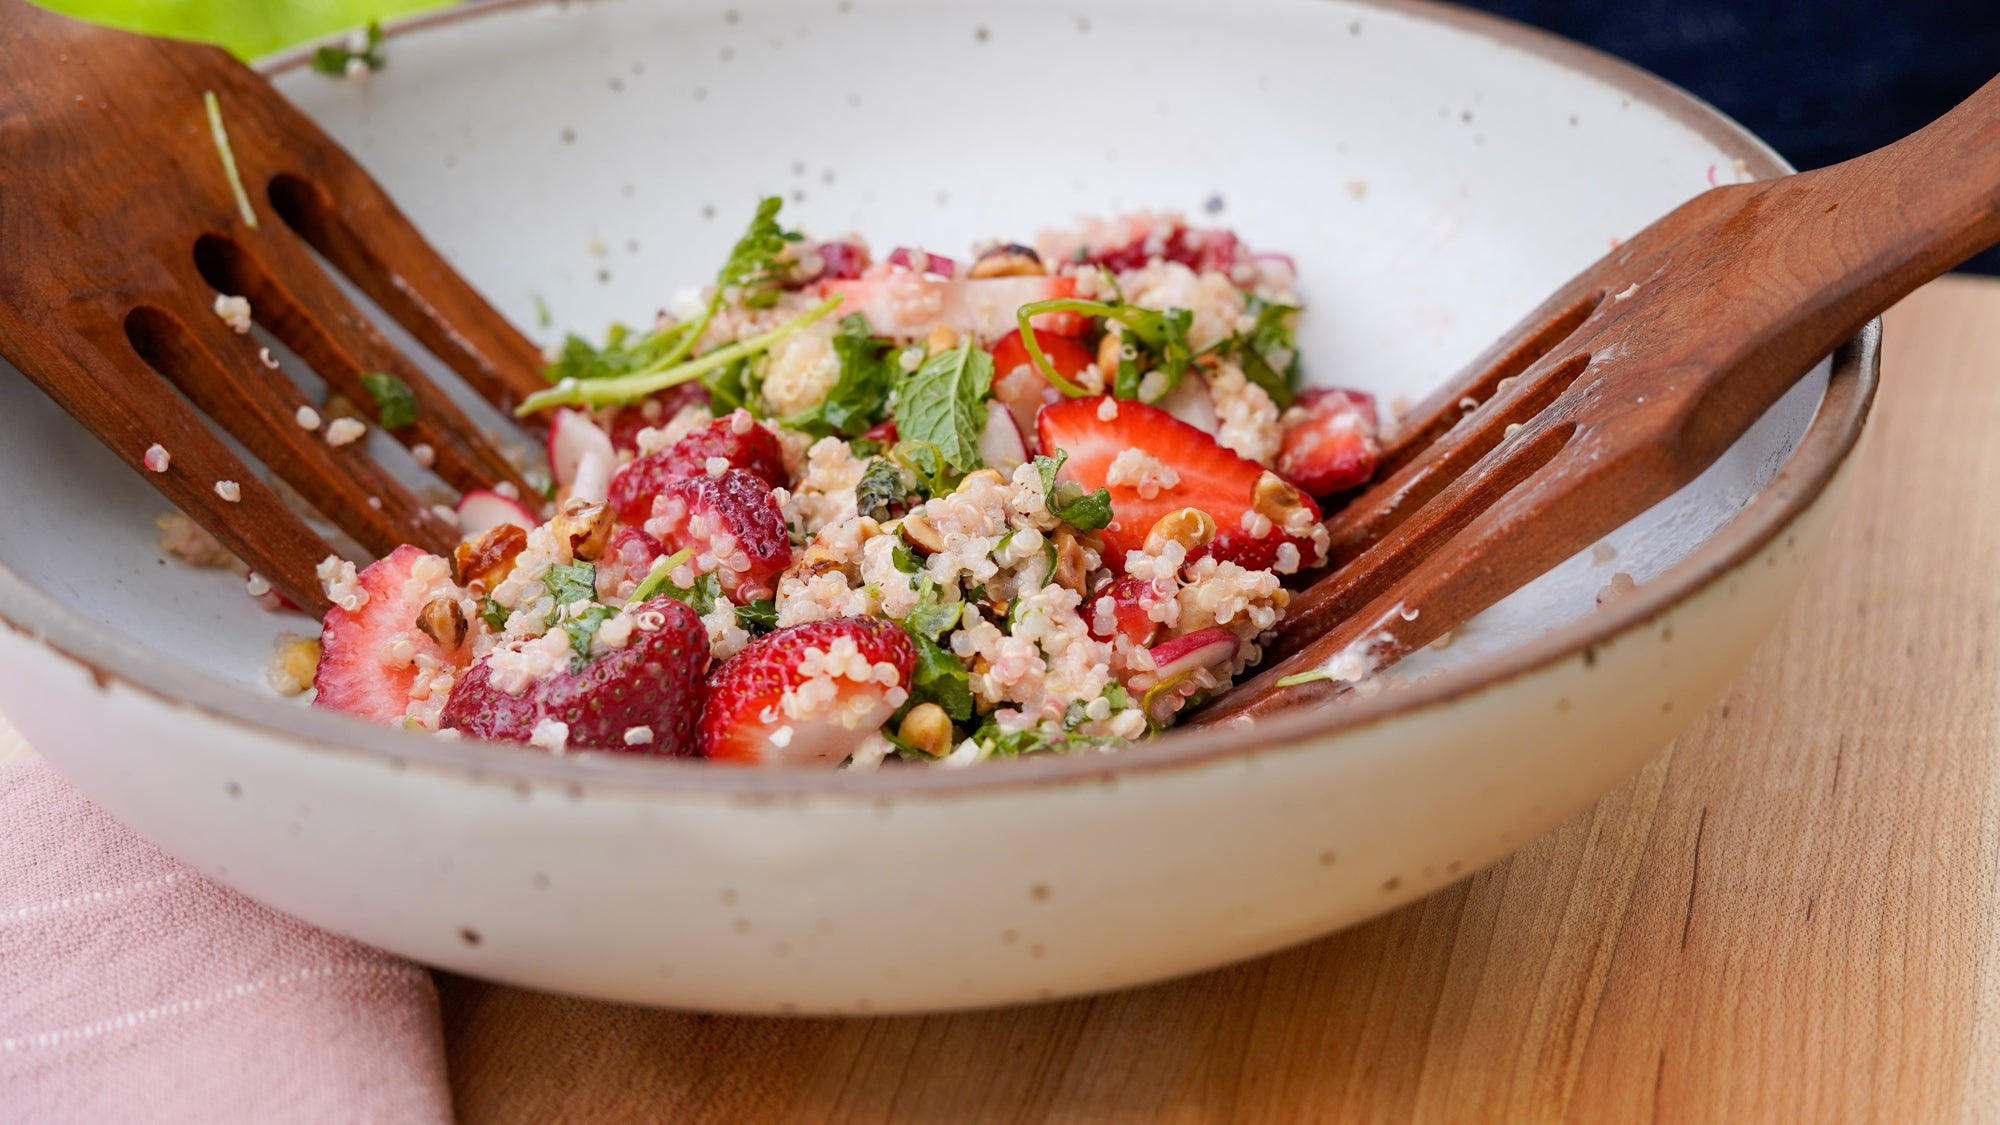 Summer Strawberry and Quinoa Salad